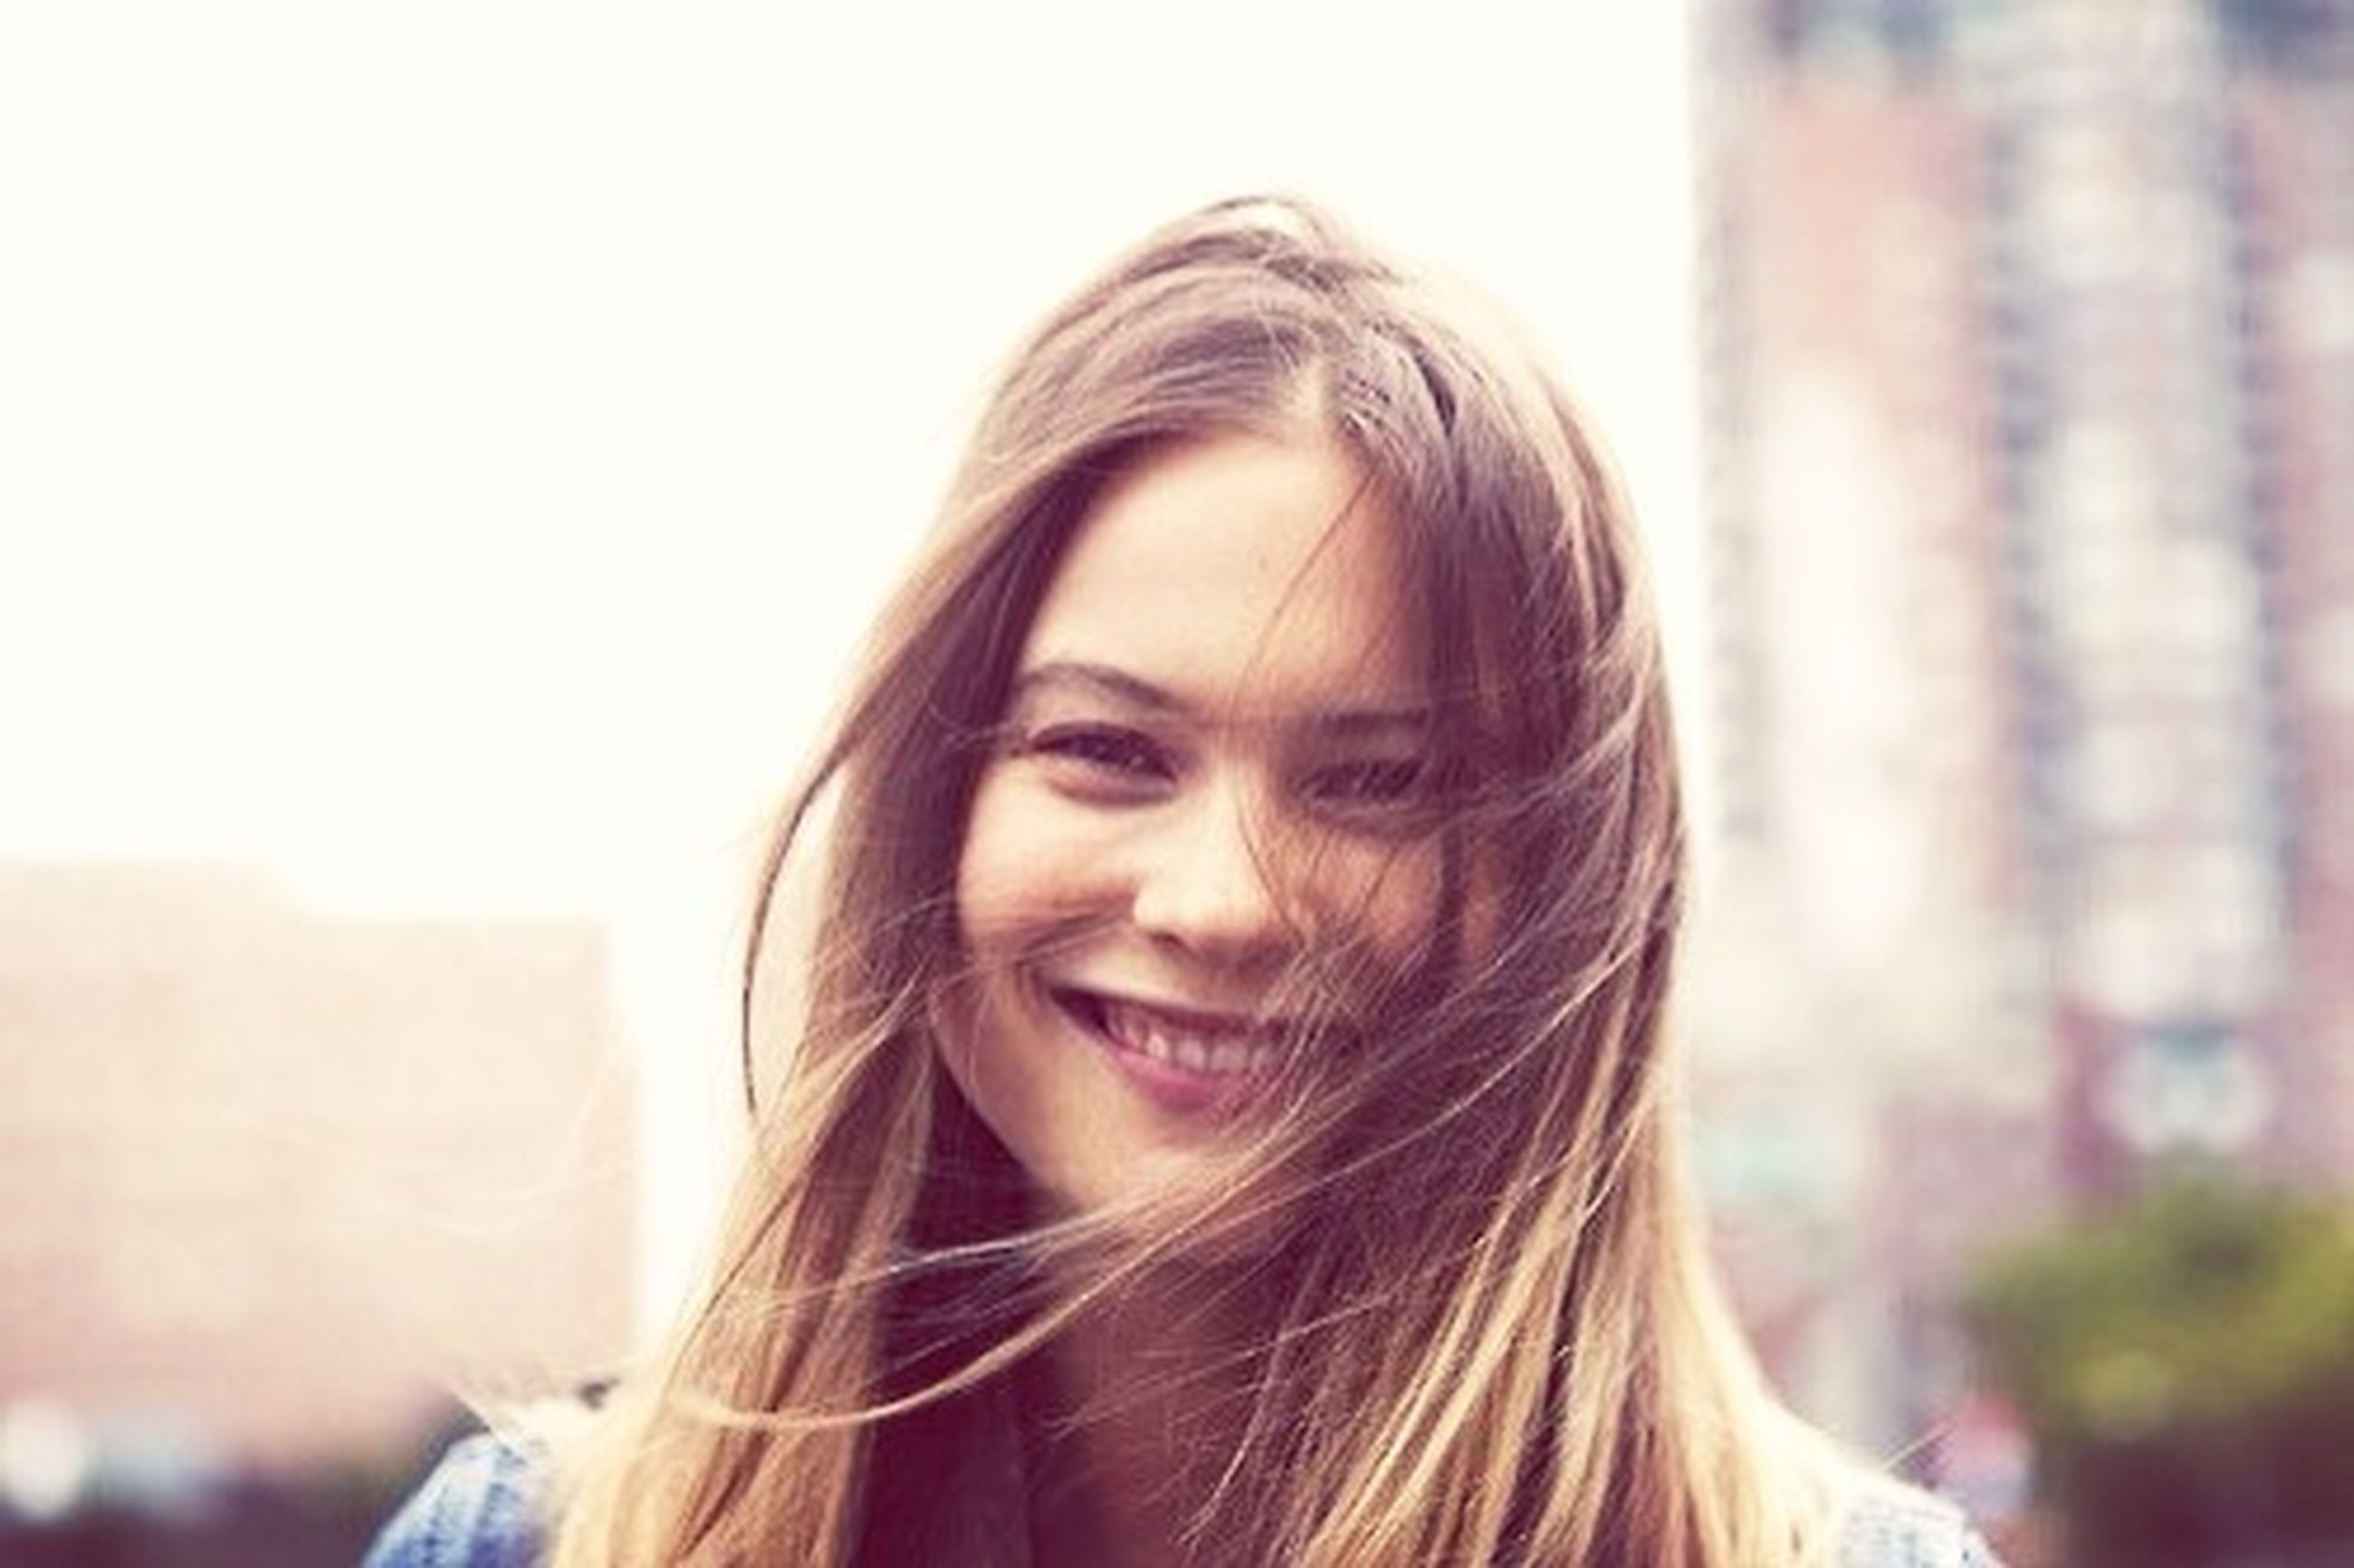 person, portrait, looking at camera, headshot, young adult, young women, long hair, close-up, lifestyles, focus on foreground, front view, head and shoulders, blond hair, leisure activity, smiling, brown hair